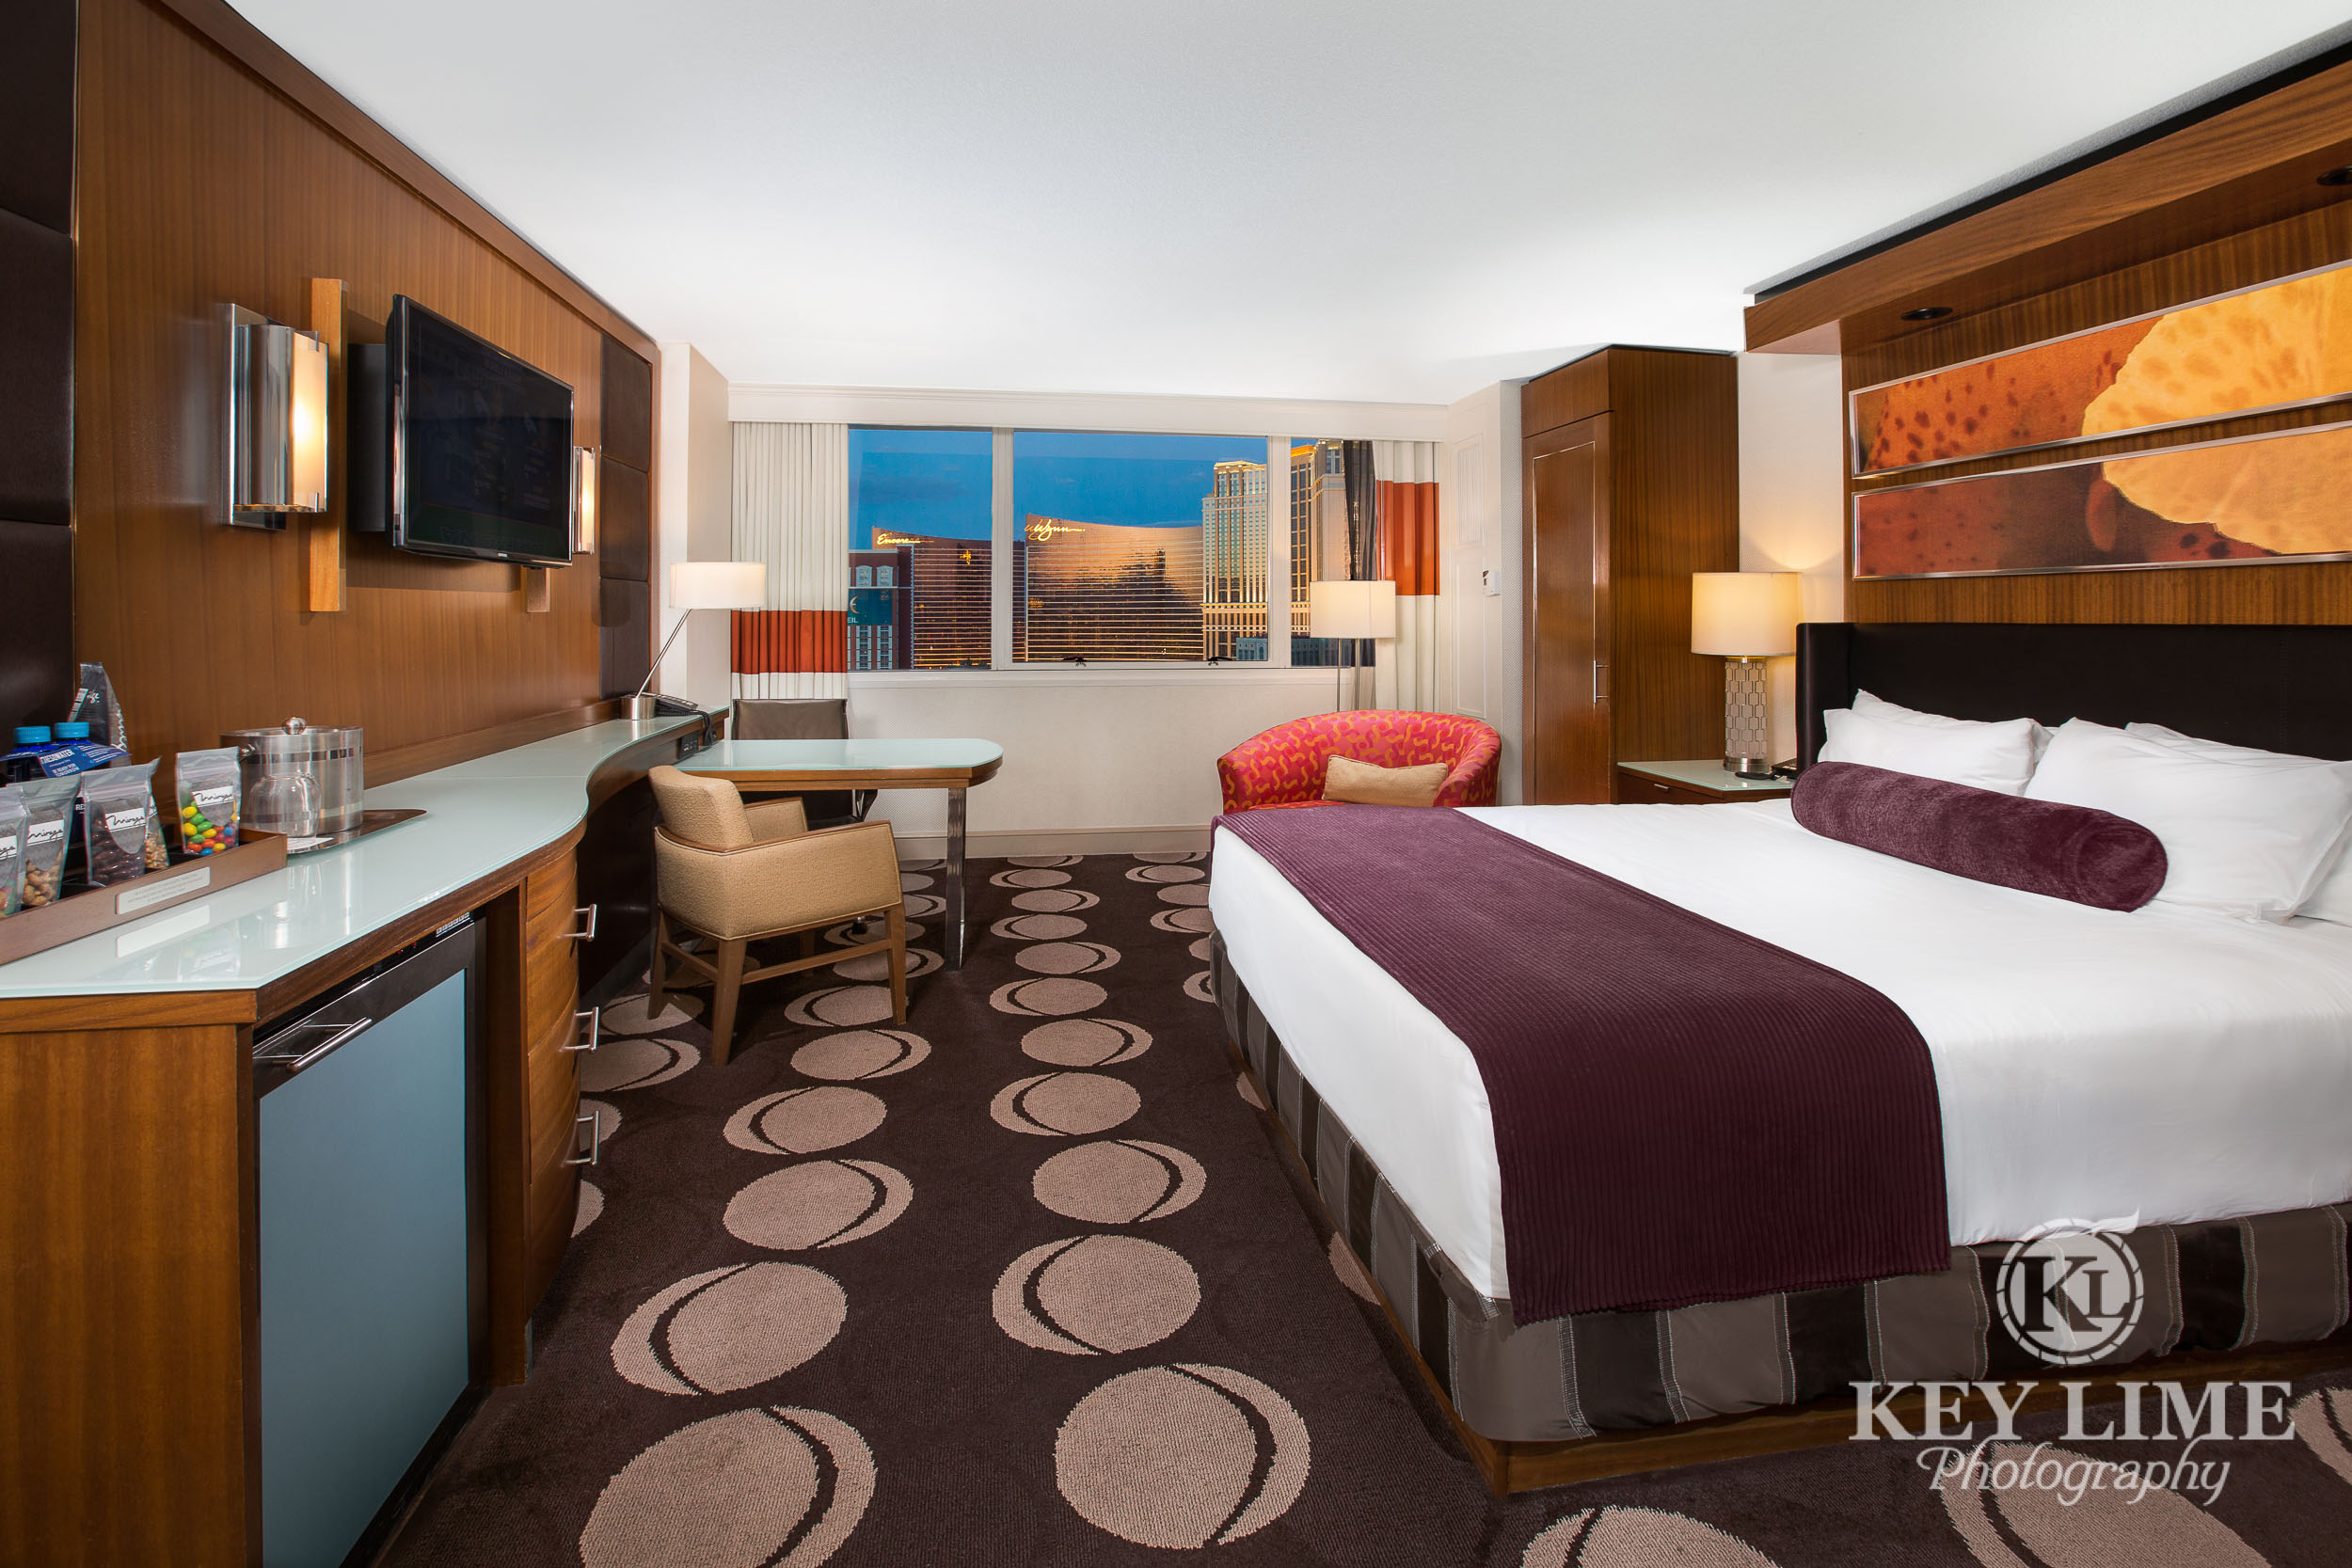 Resort hotel suite. Architectural photographer image of room with TV and a single king size bed.